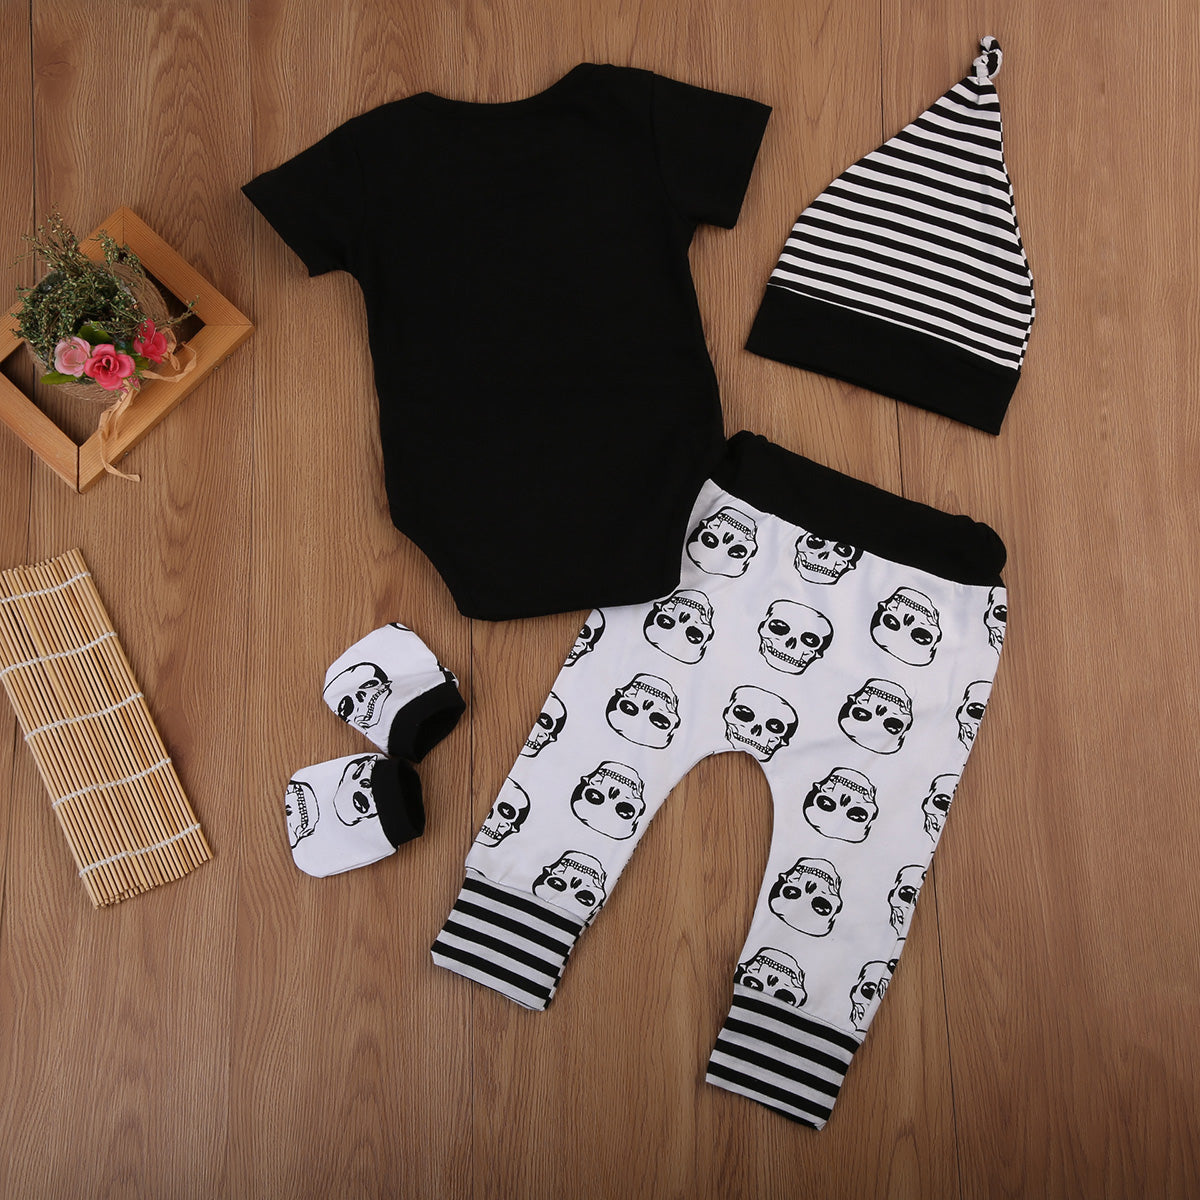 Cute Skeleton 4 Piece Outfit